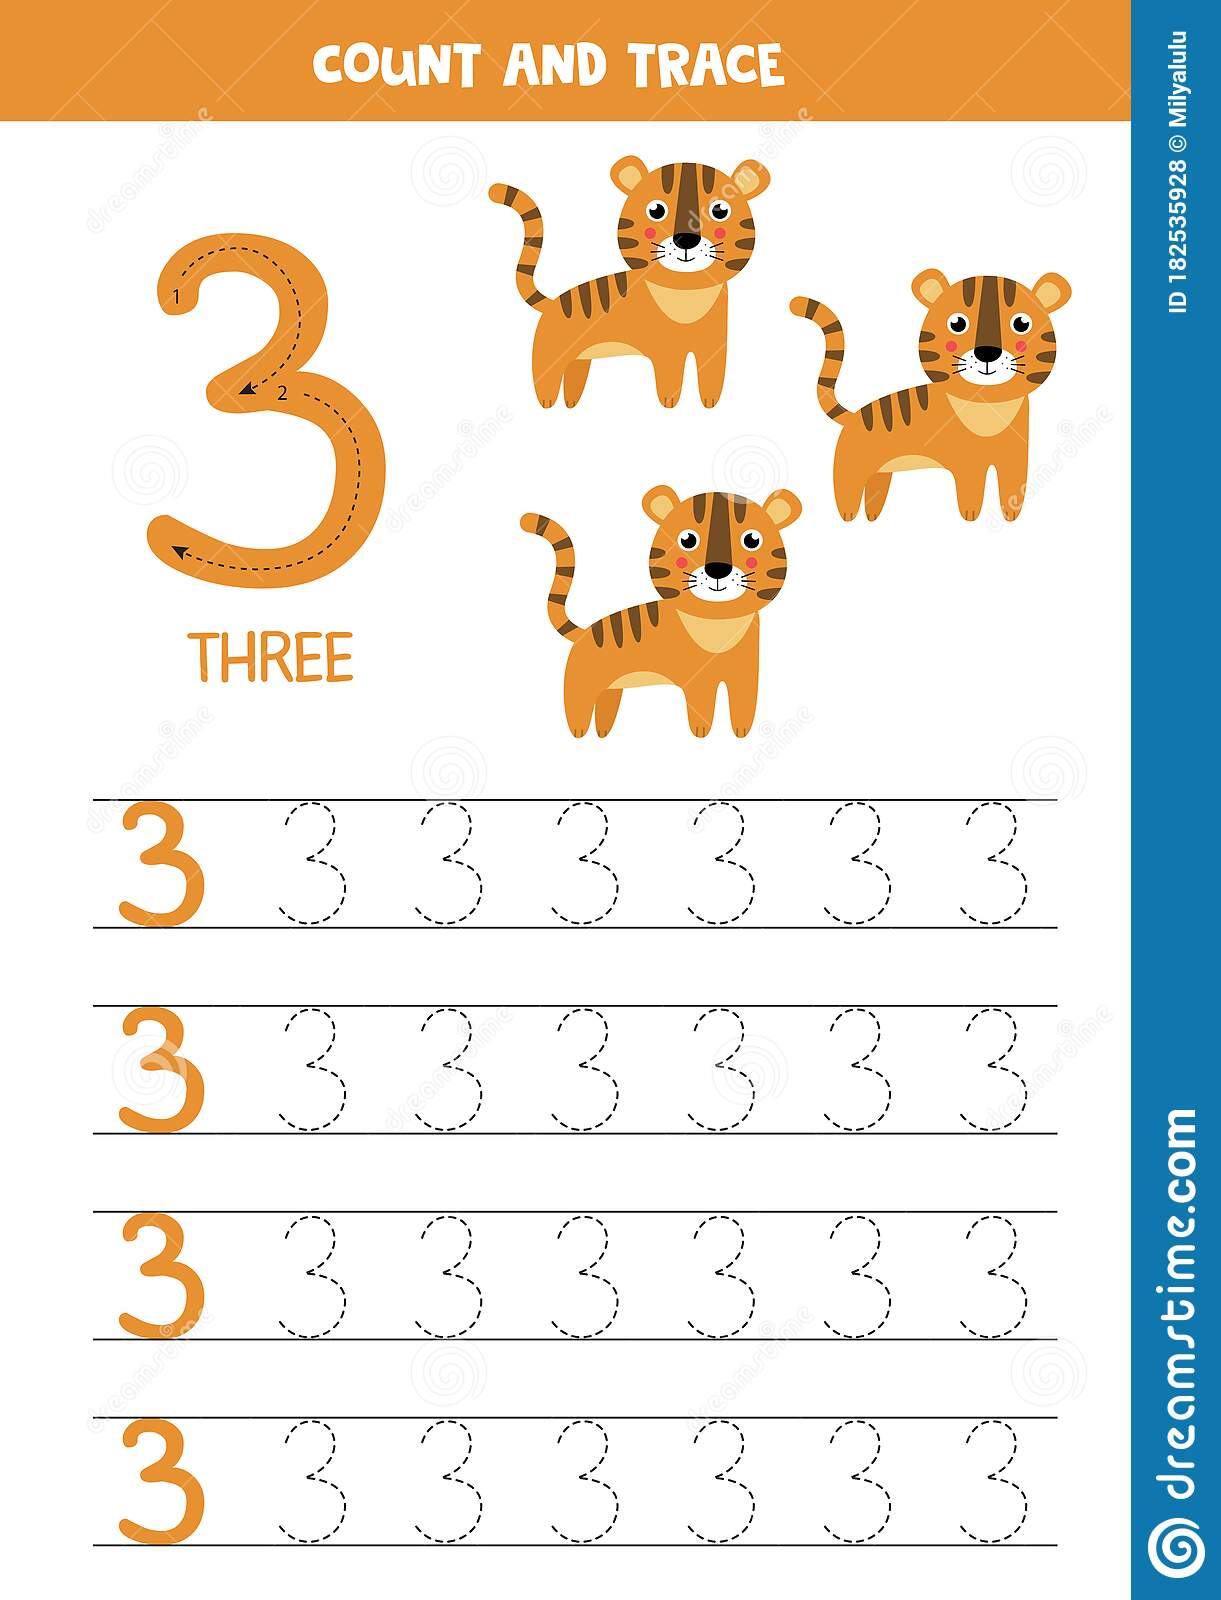 Worksheet For Learning Numbers With Cute Elephants Number